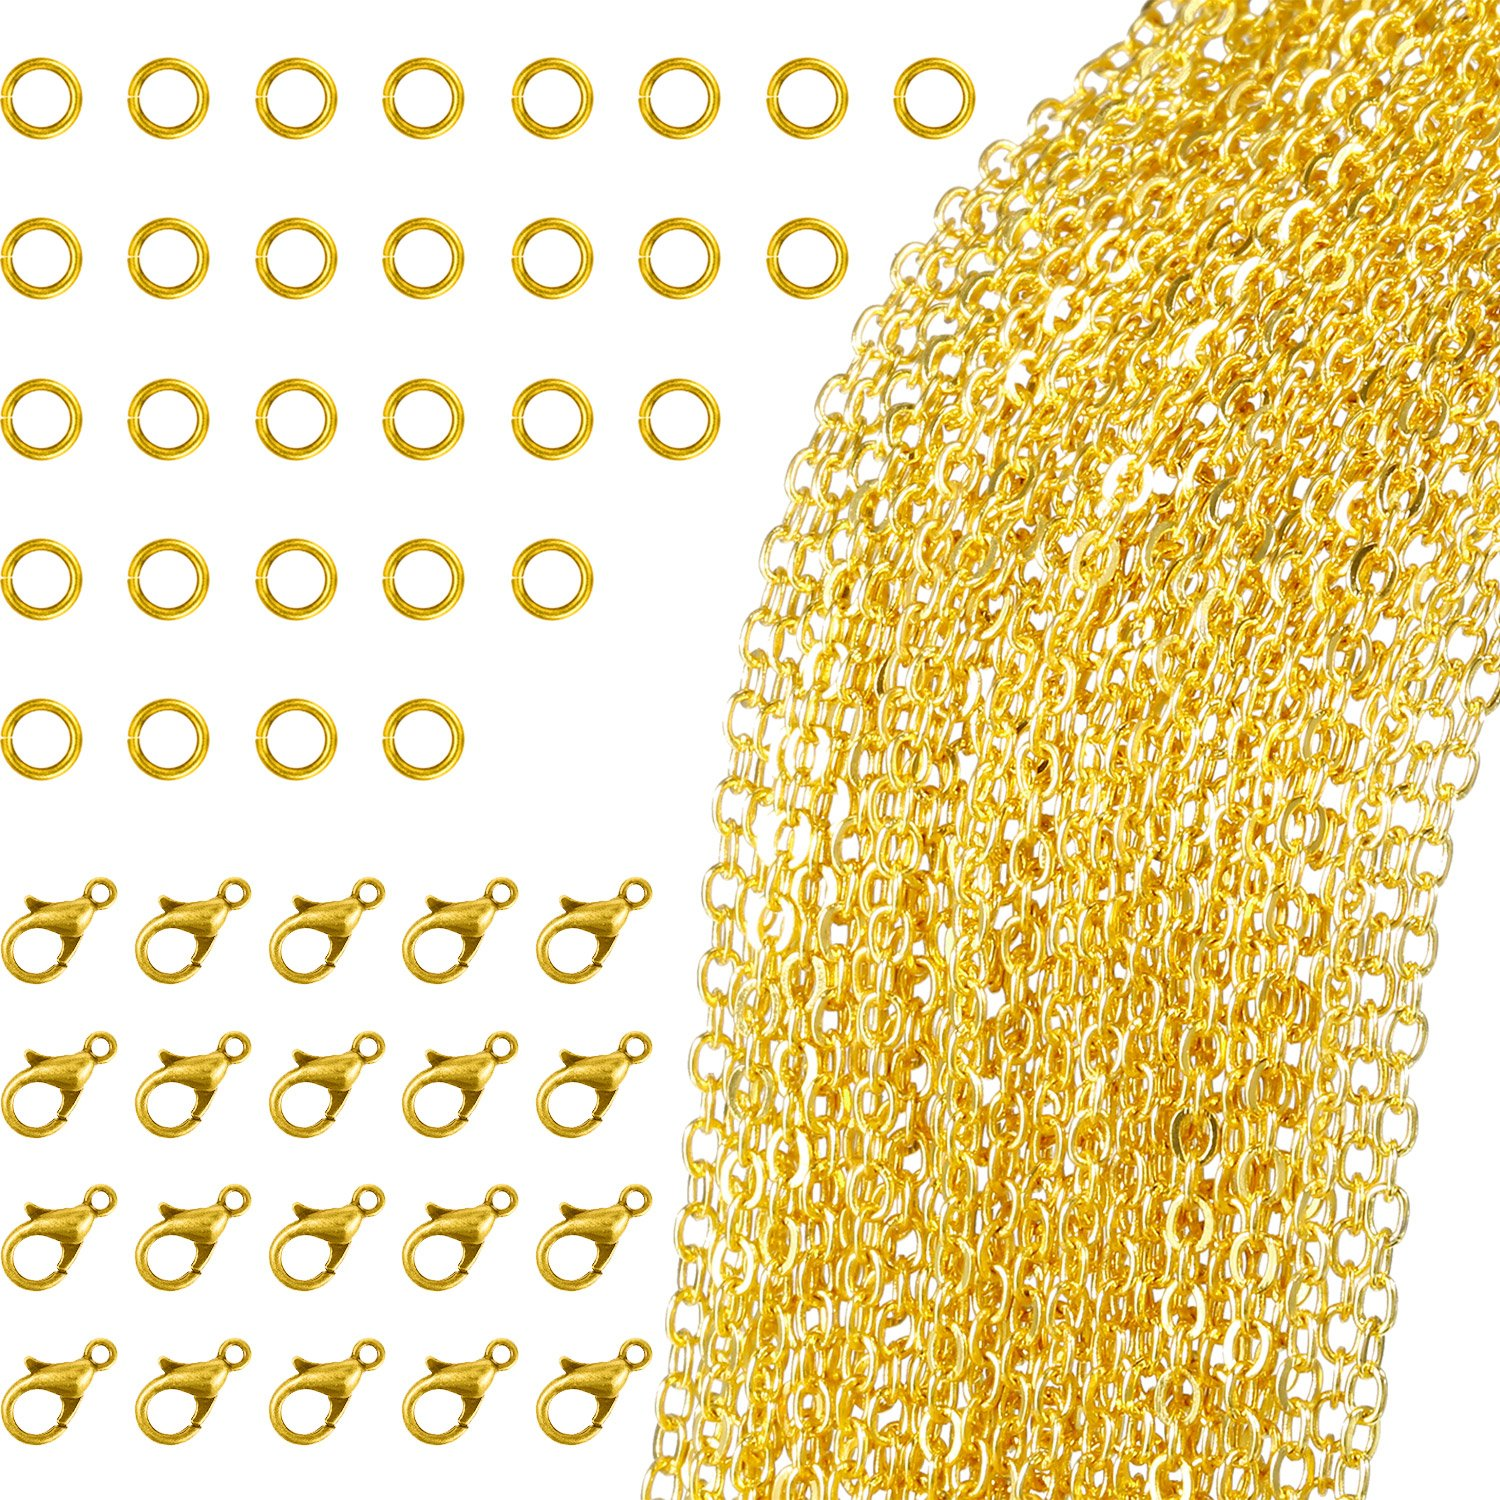 33 Feet Gold Plated Link Chain Necklace with 30 Jump Rings and 20 Lobster Clasps for Jewelry DIY Making (1.5 mm) TecUnite